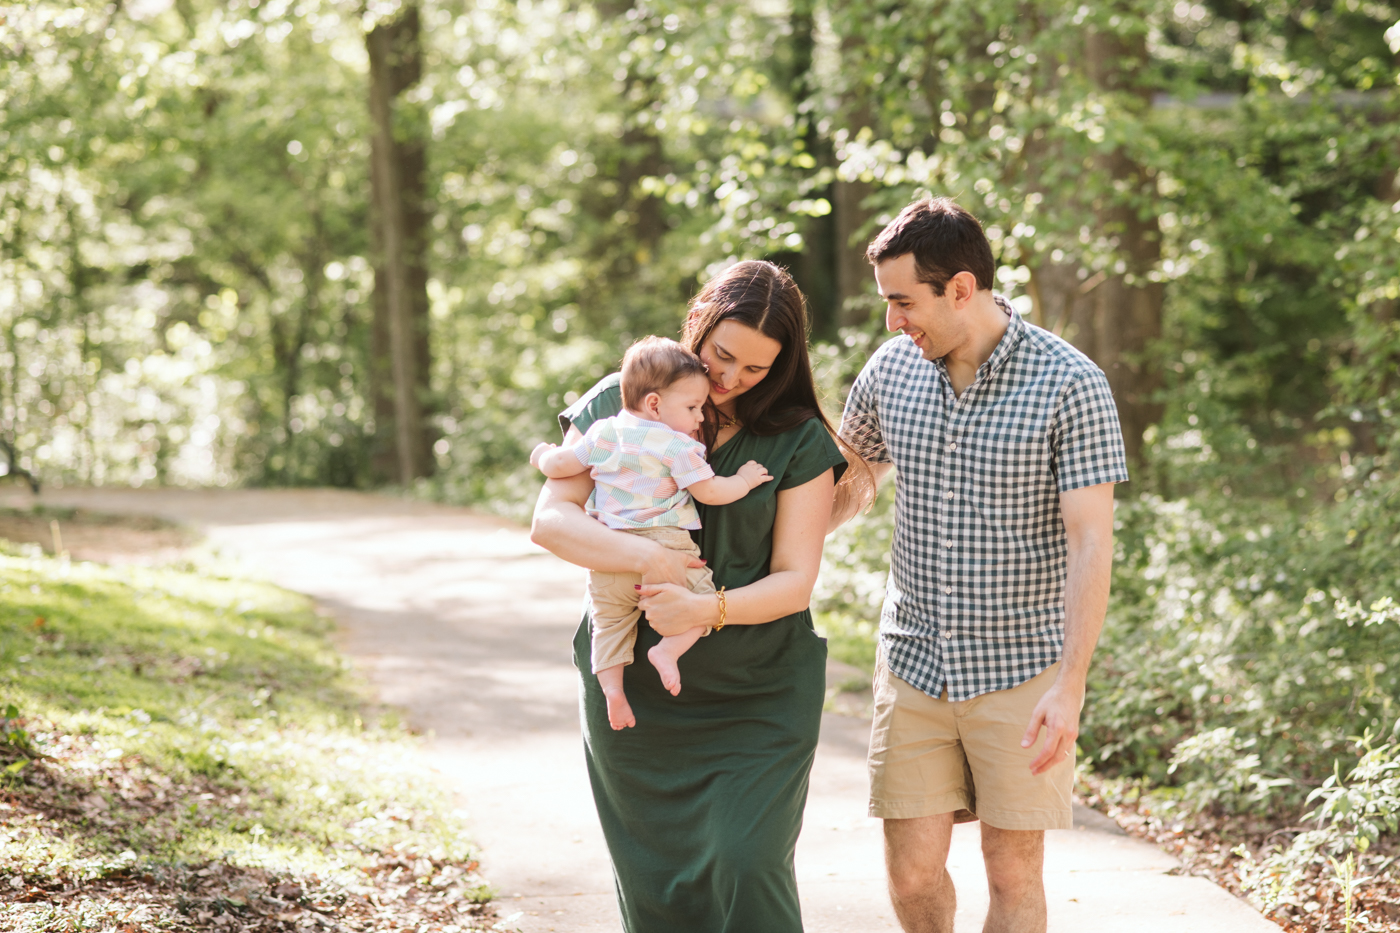 Mother holding her baby and walking with her partner through a park in ATL Raven Shutley Studios